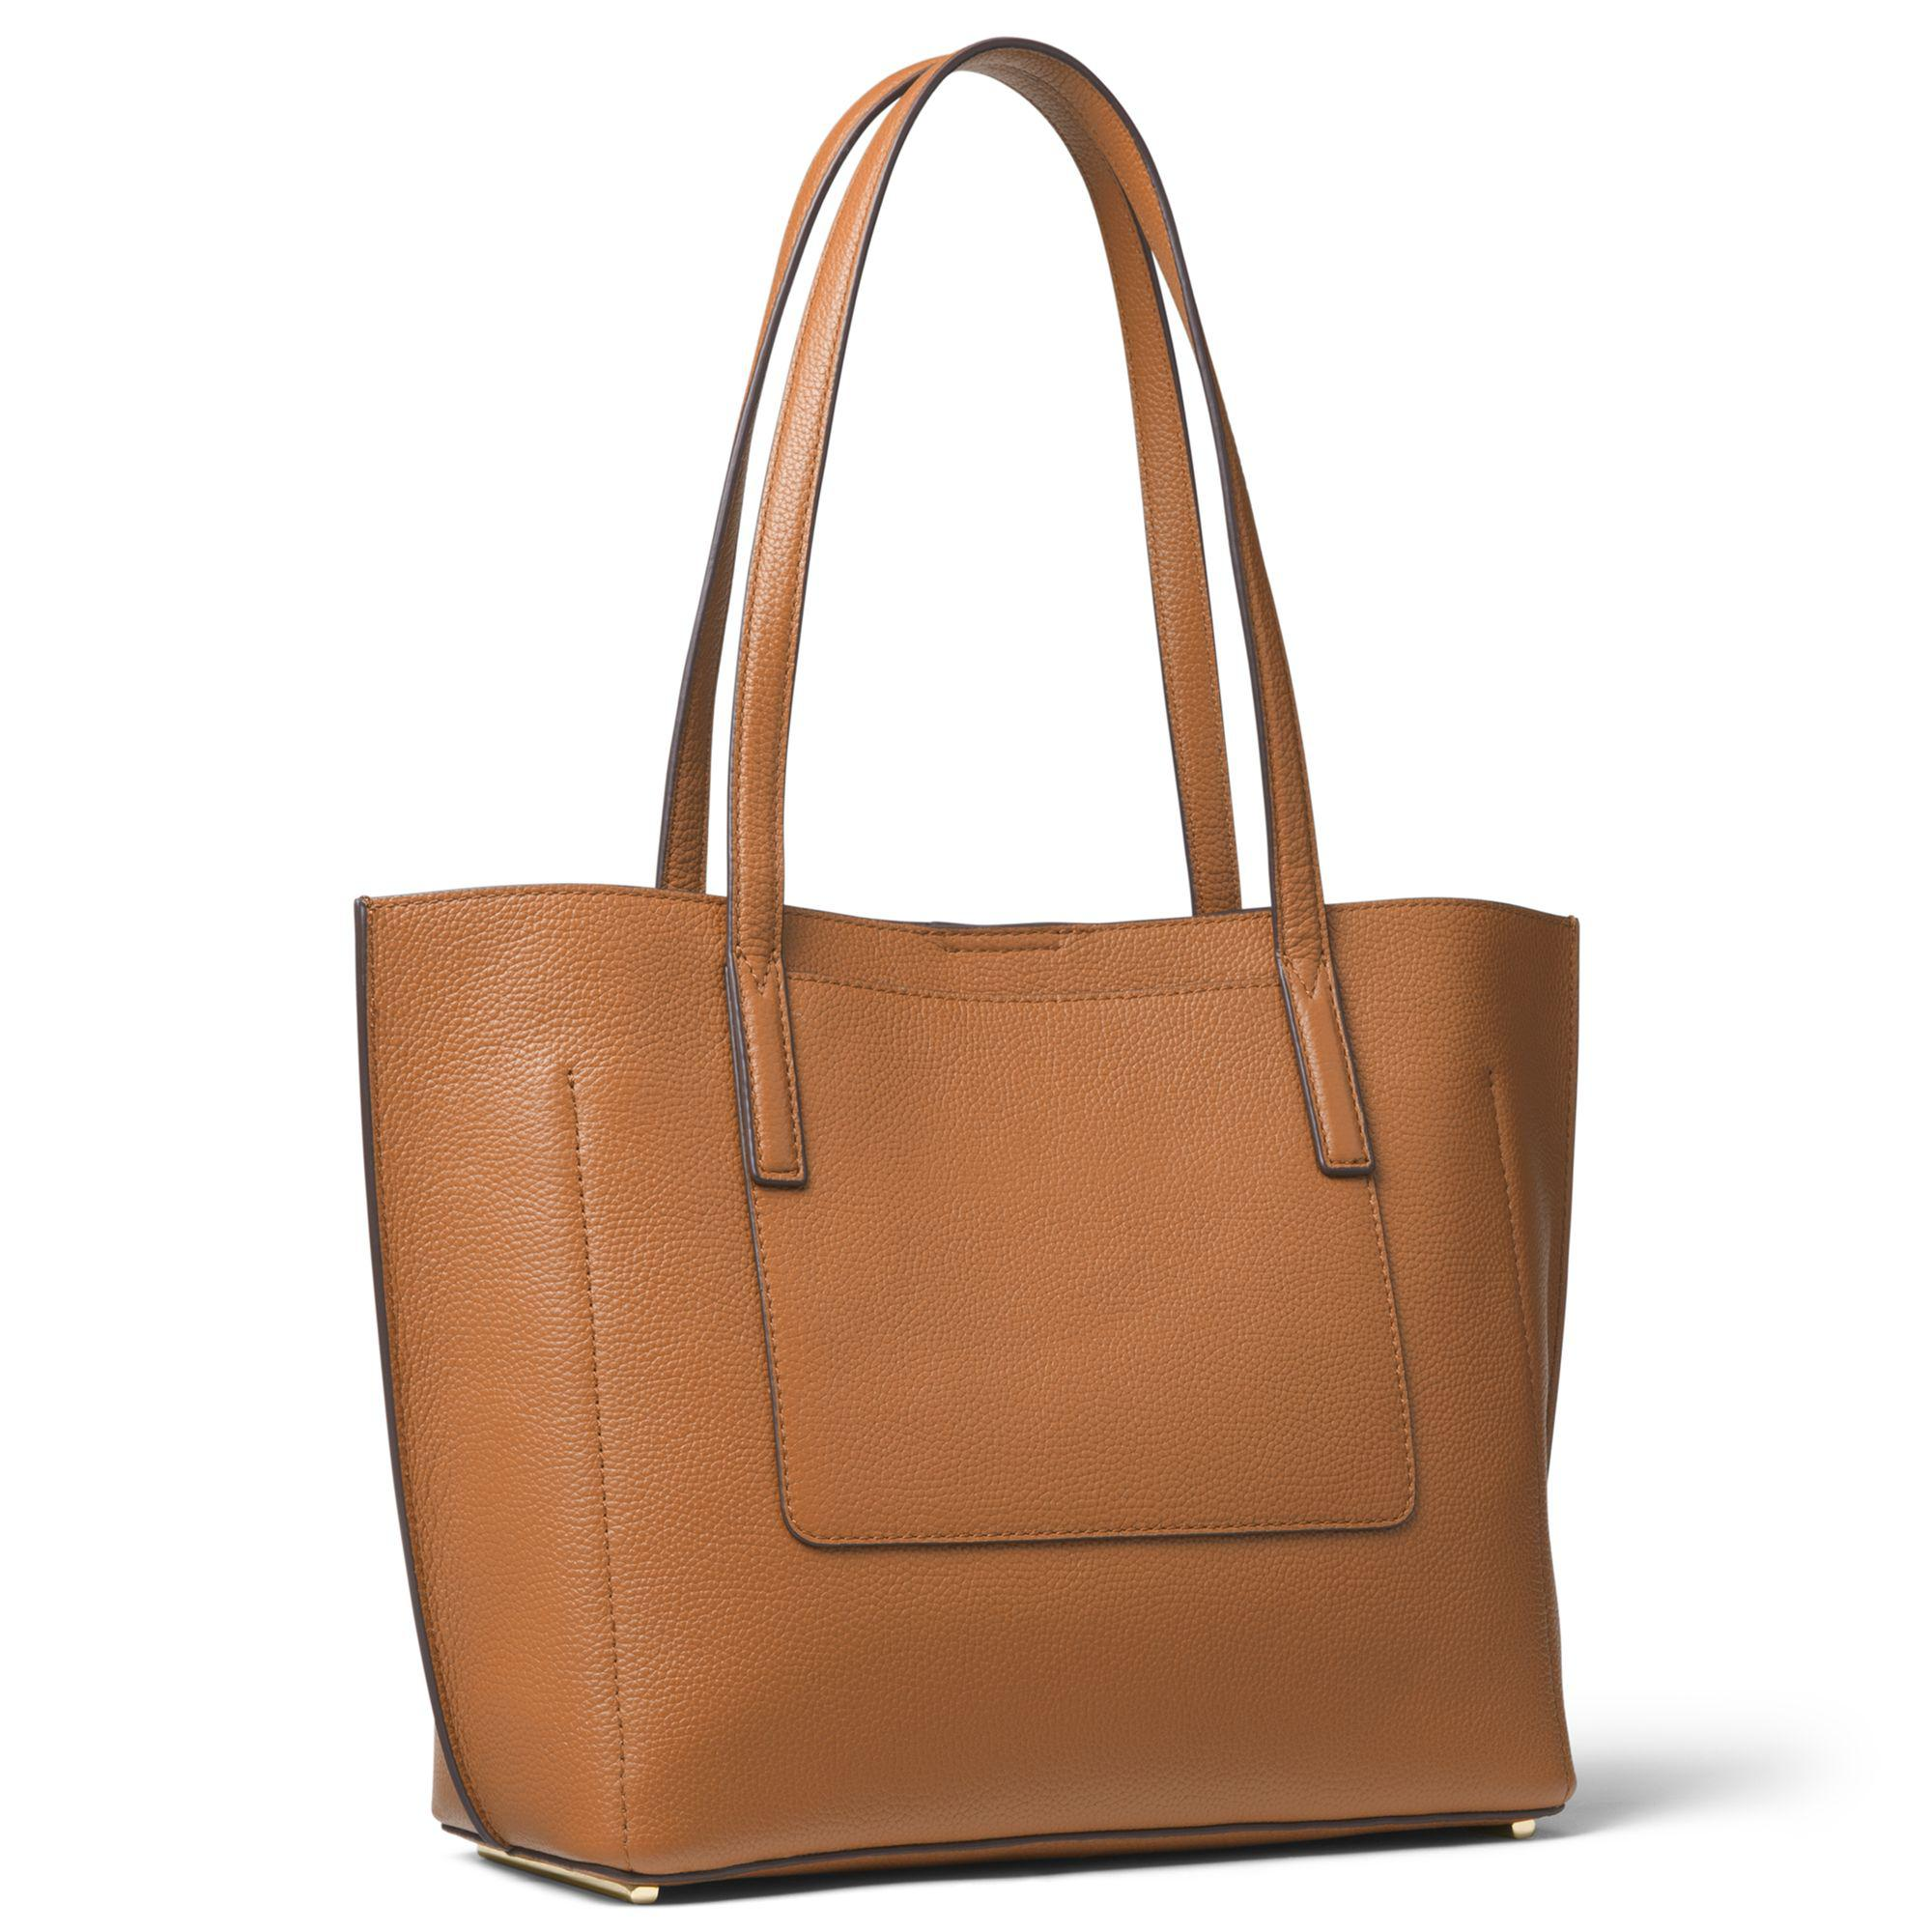 59b47ab175 Michael Kors Ana Medium Pebbled Leather Tote in Brown - Lyst